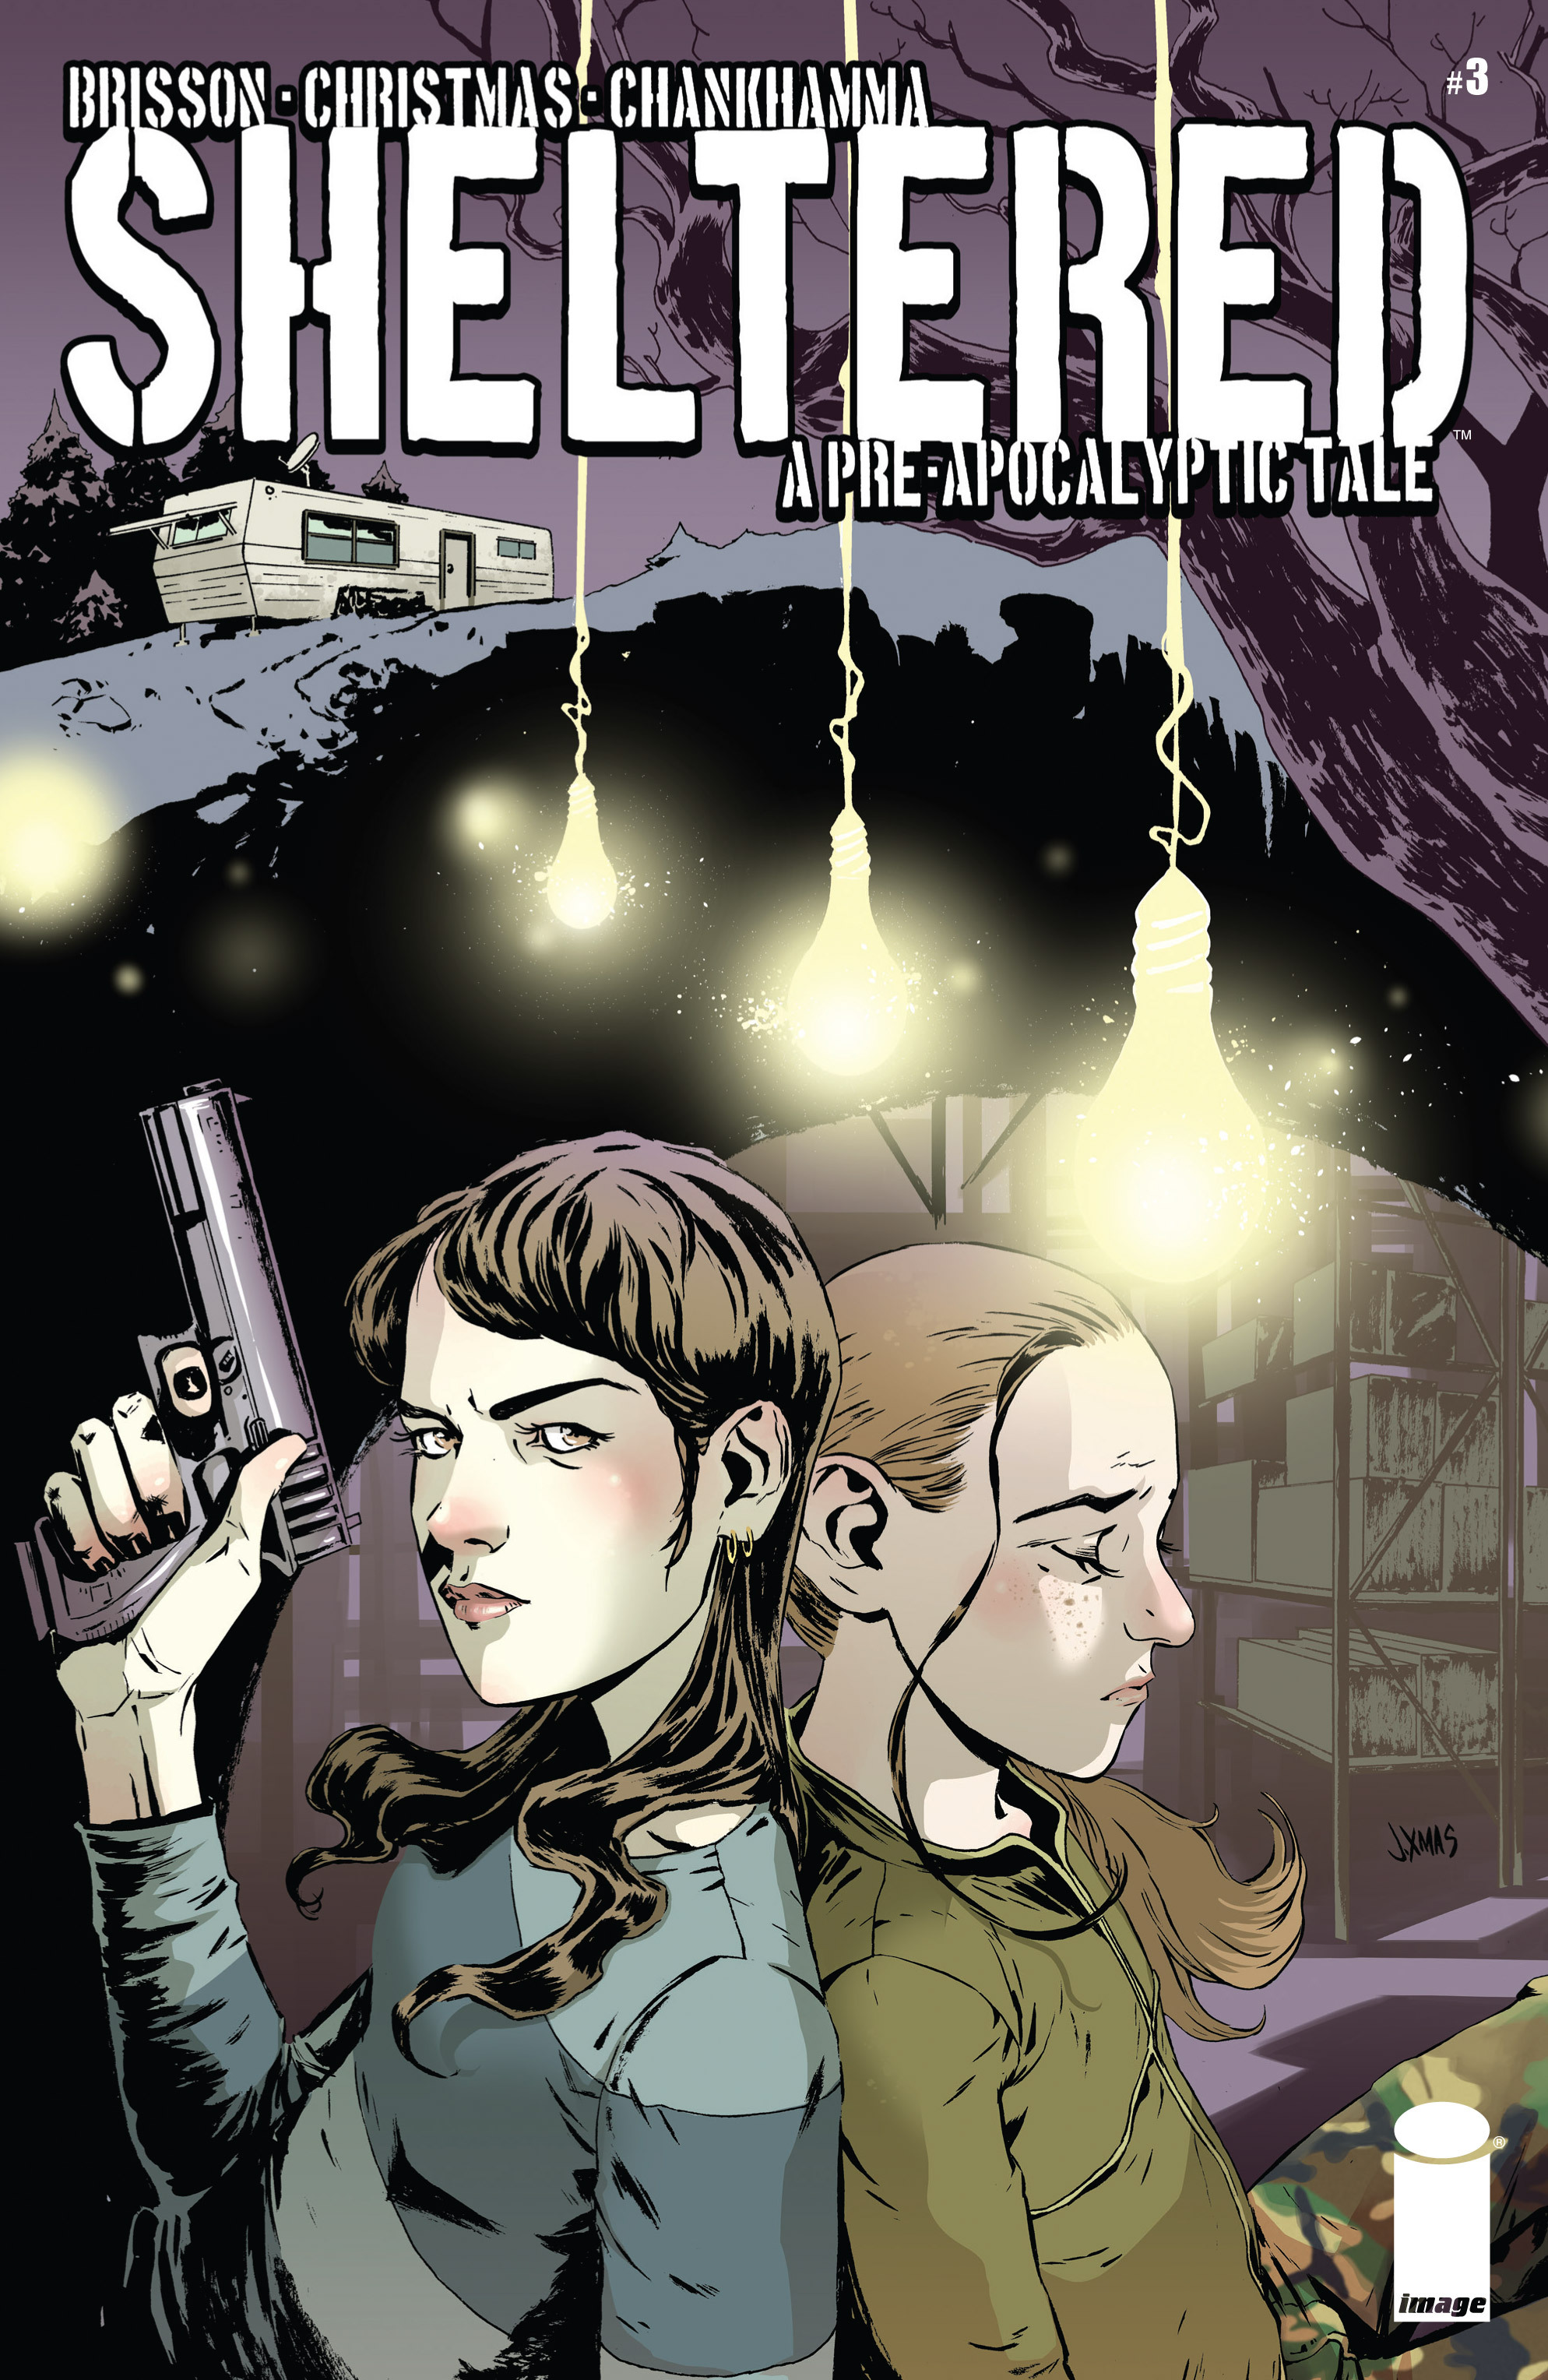 Read online Sheltered comic -  Issue #3 - 1